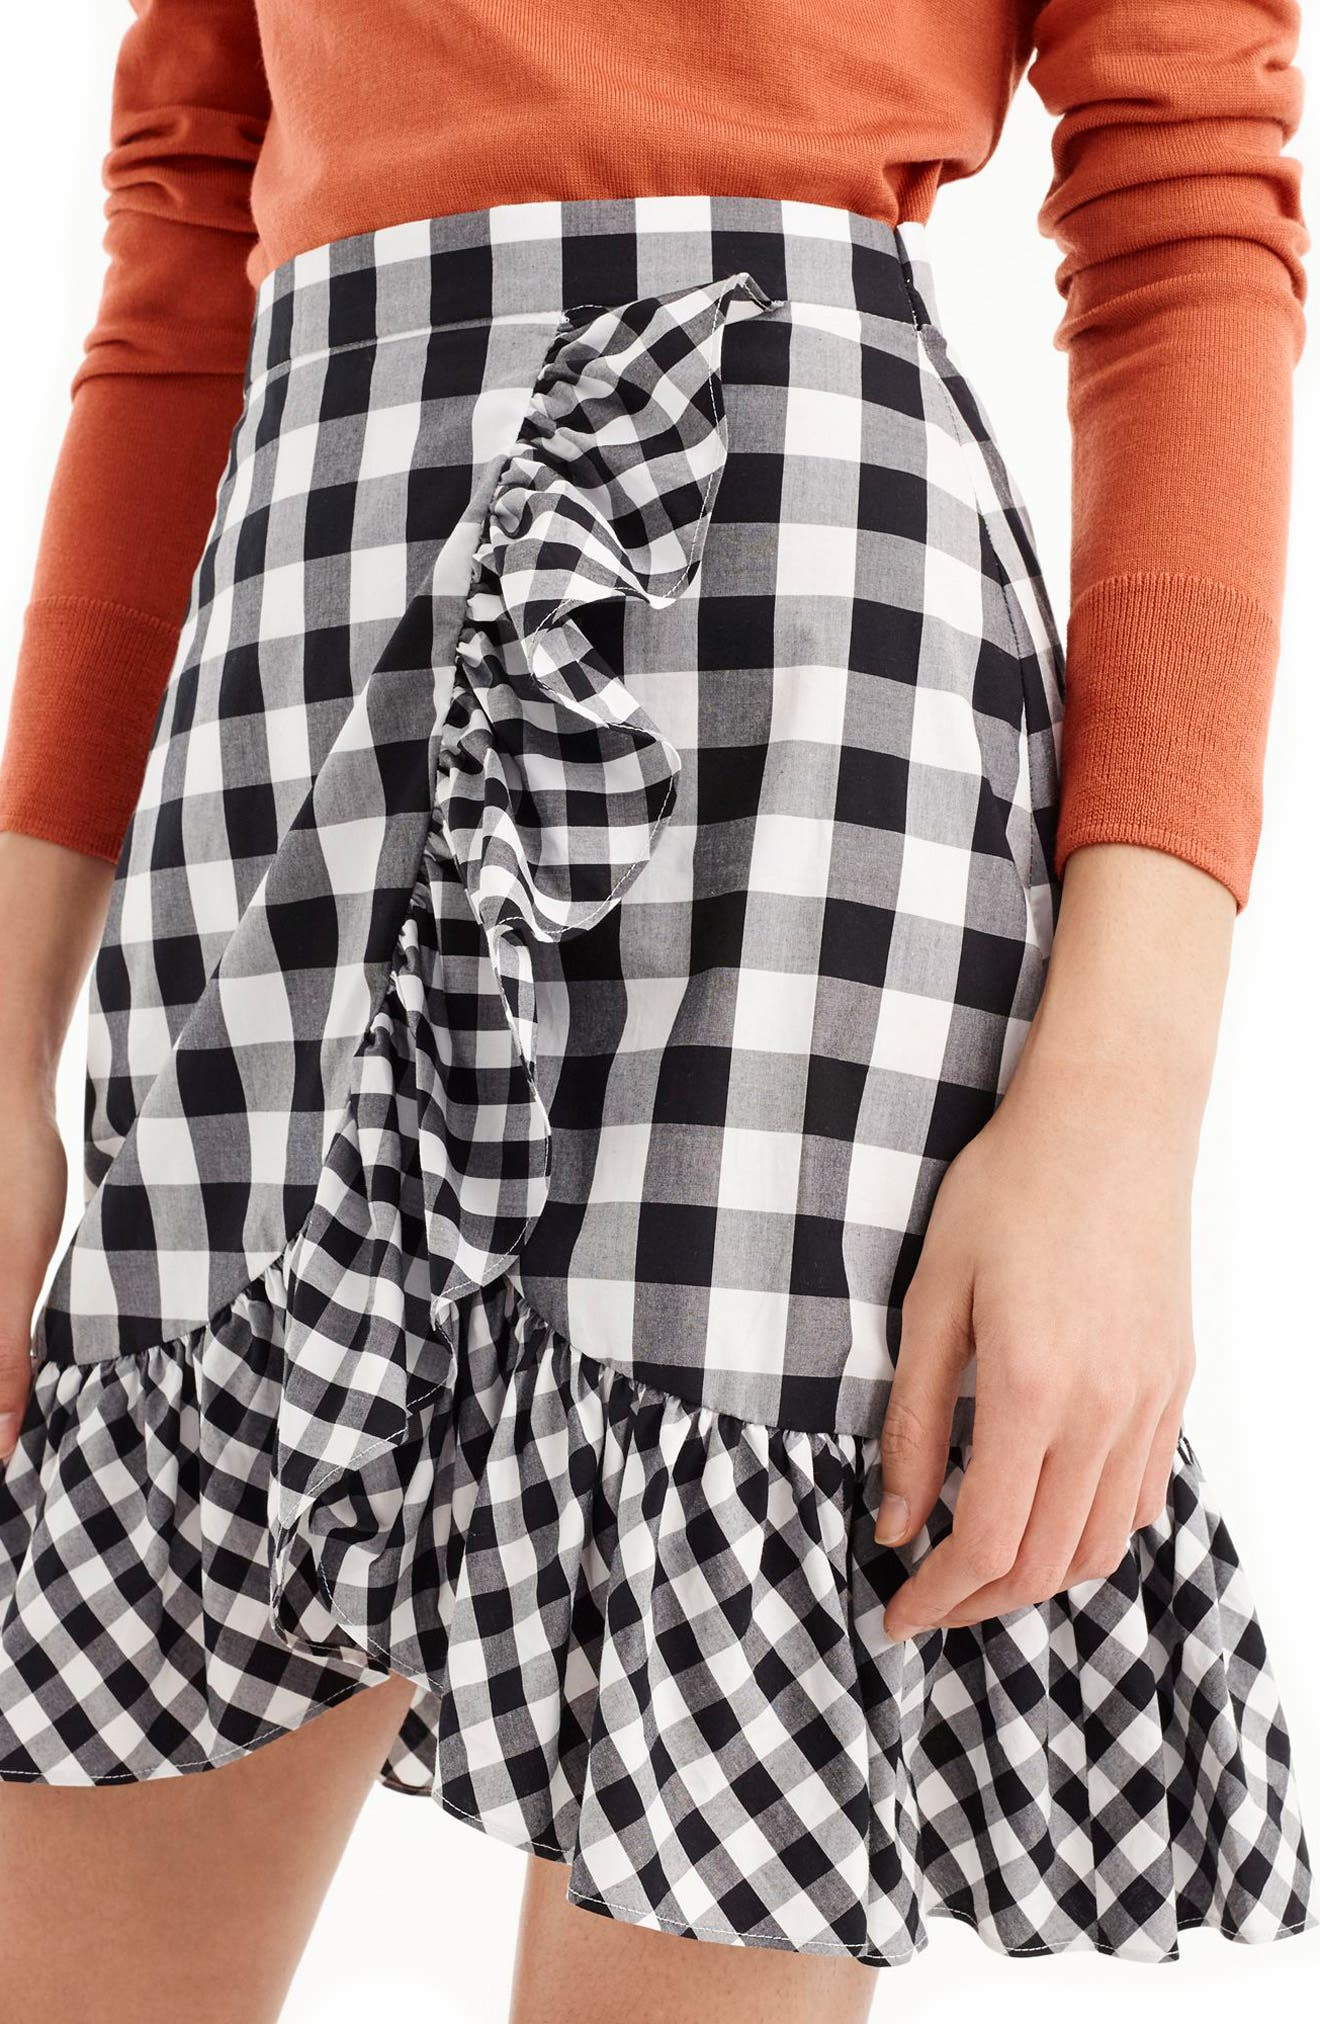 Pistachio Gingham Cotton Poplin Ruffle Skirt,                             Alternate thumbnail 3, color,                             Black